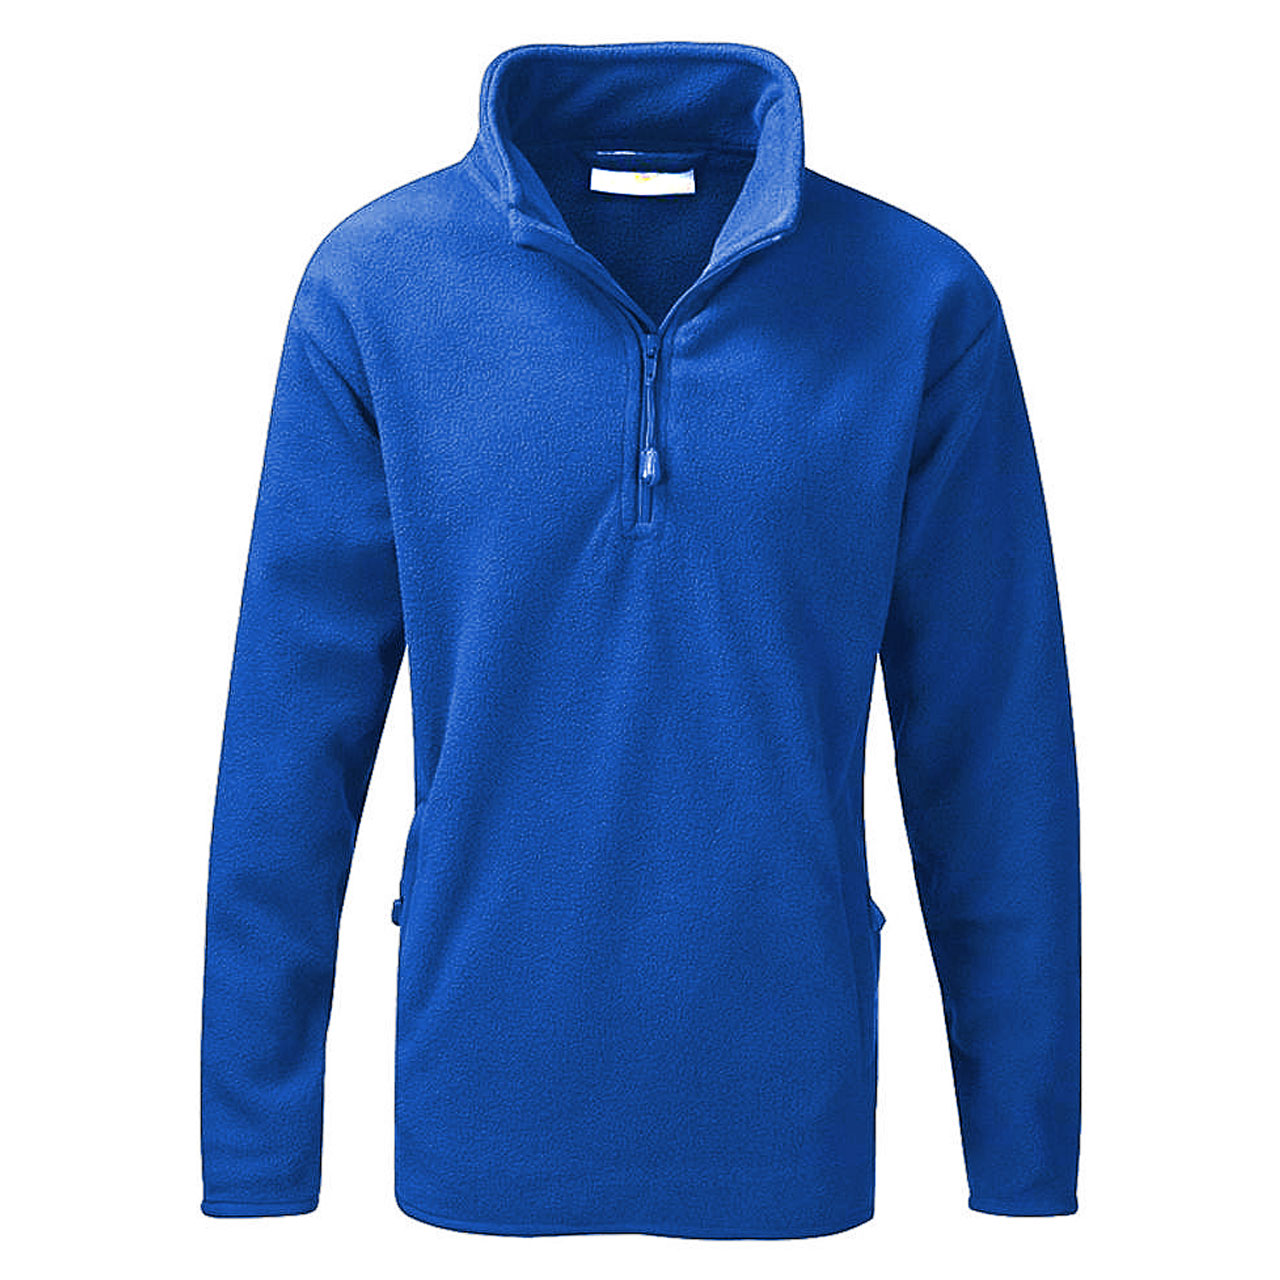 Embroidered School Micro Fleece from Jageto Embroidery and Print in Braintree Essex in the UK